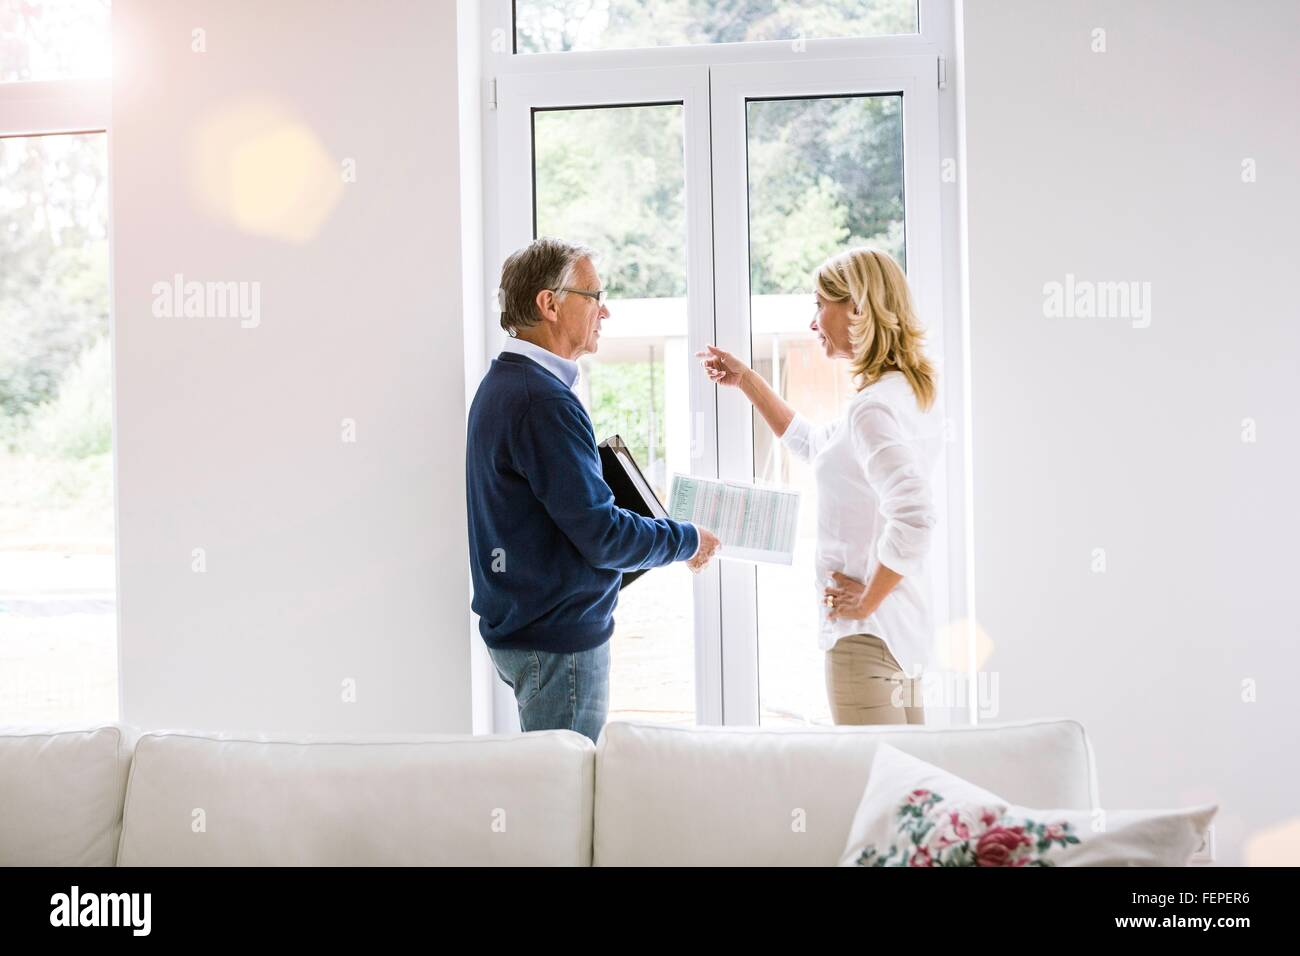 Couple in front of french doors discussing paperwork - Stock Image